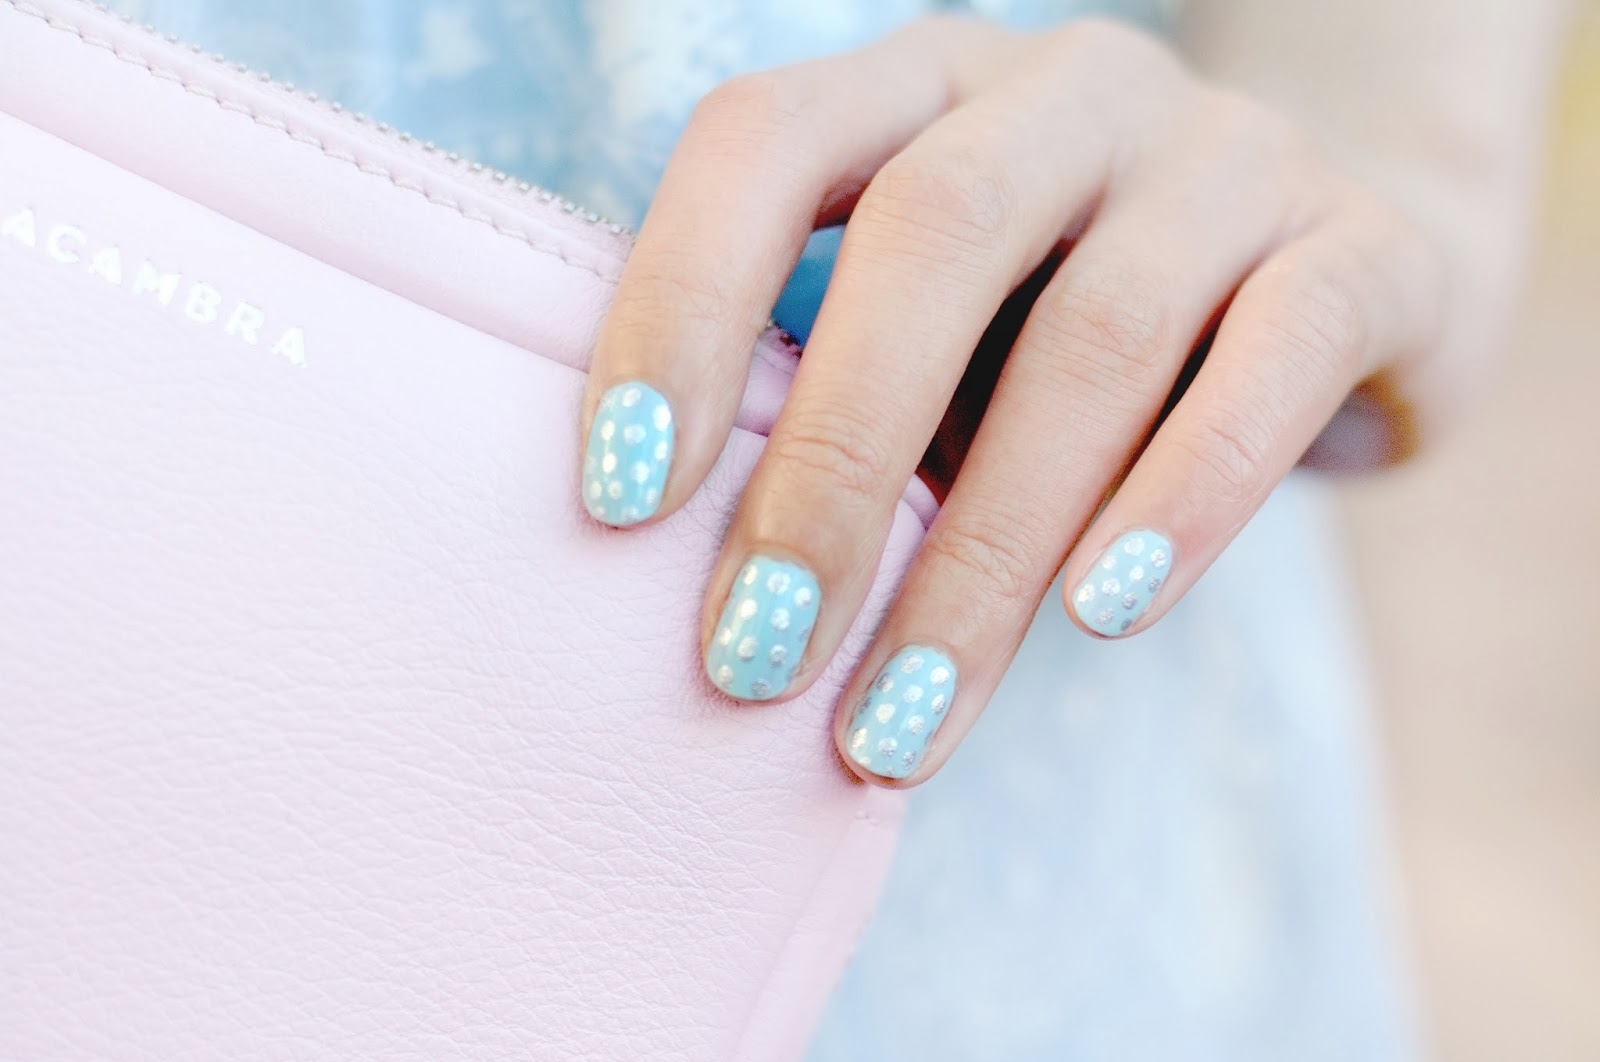 Polka dot nail art, spotty nail art, winter coloured nails, winter themed nail art,